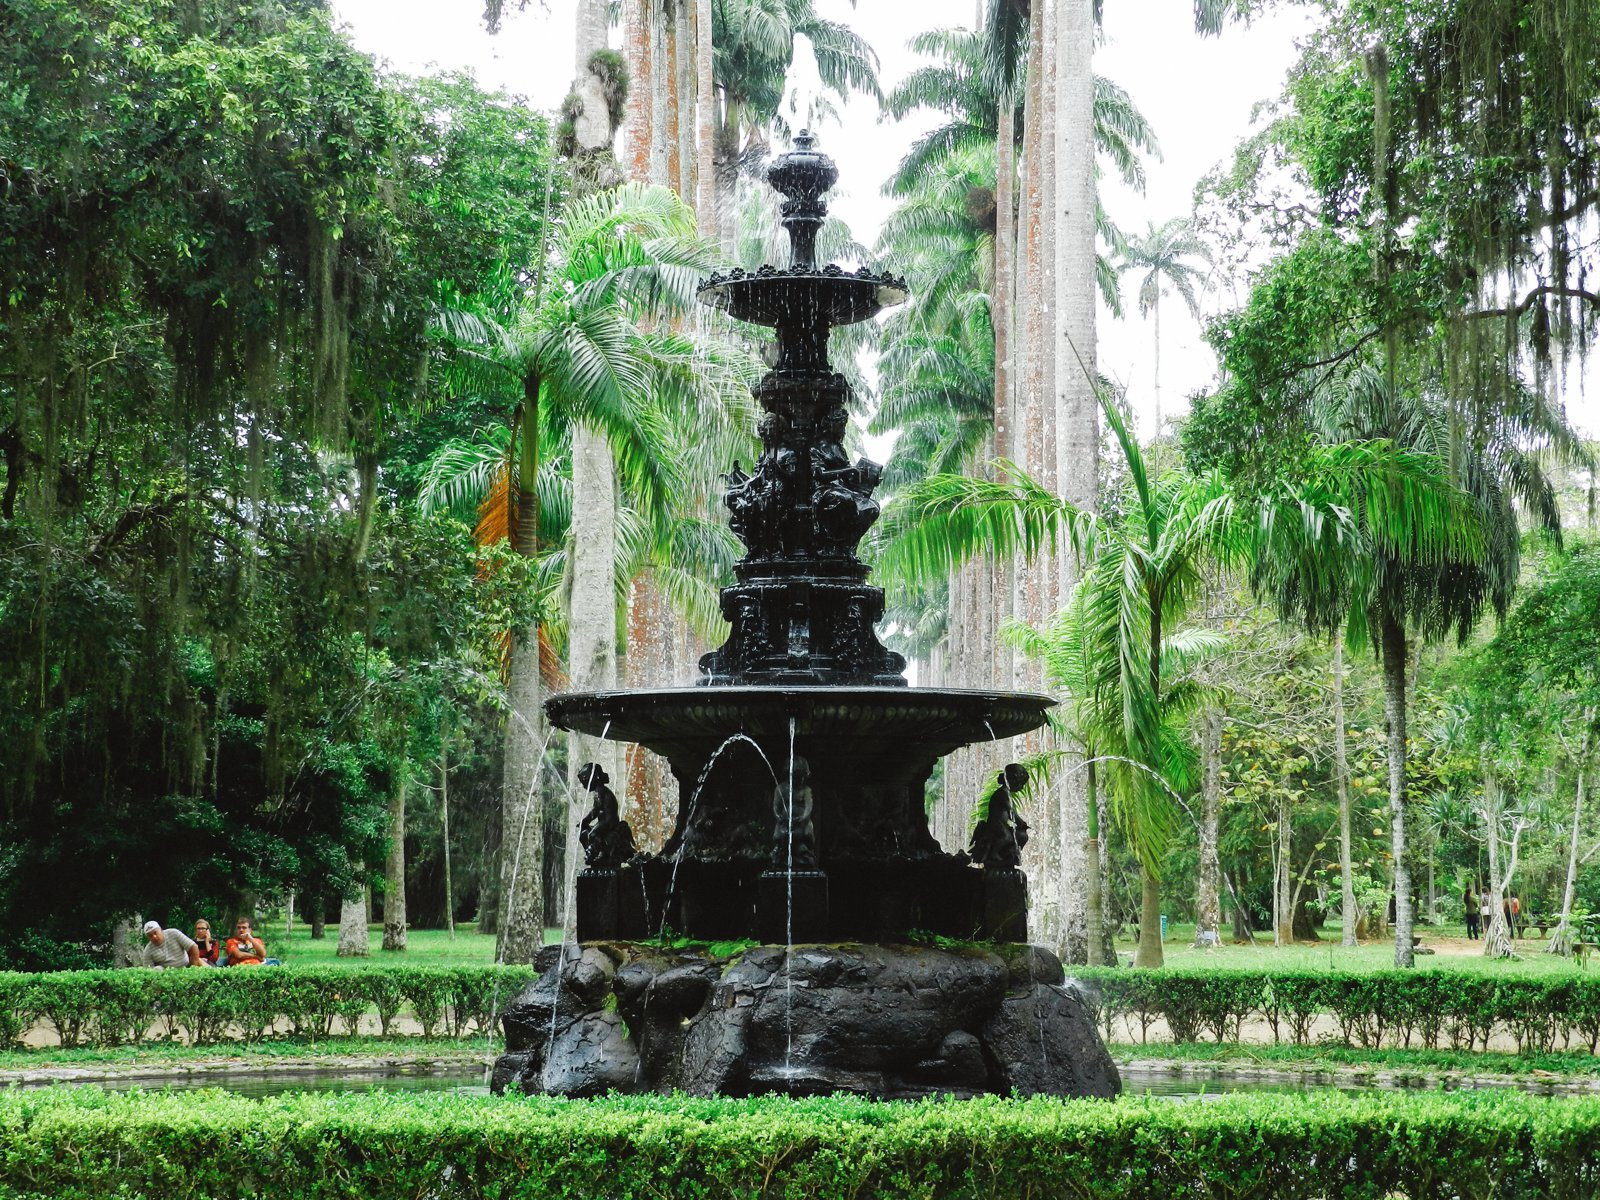 10 Fantastic Sights You Have To See In Rio de Janeiro, Brazil (9)